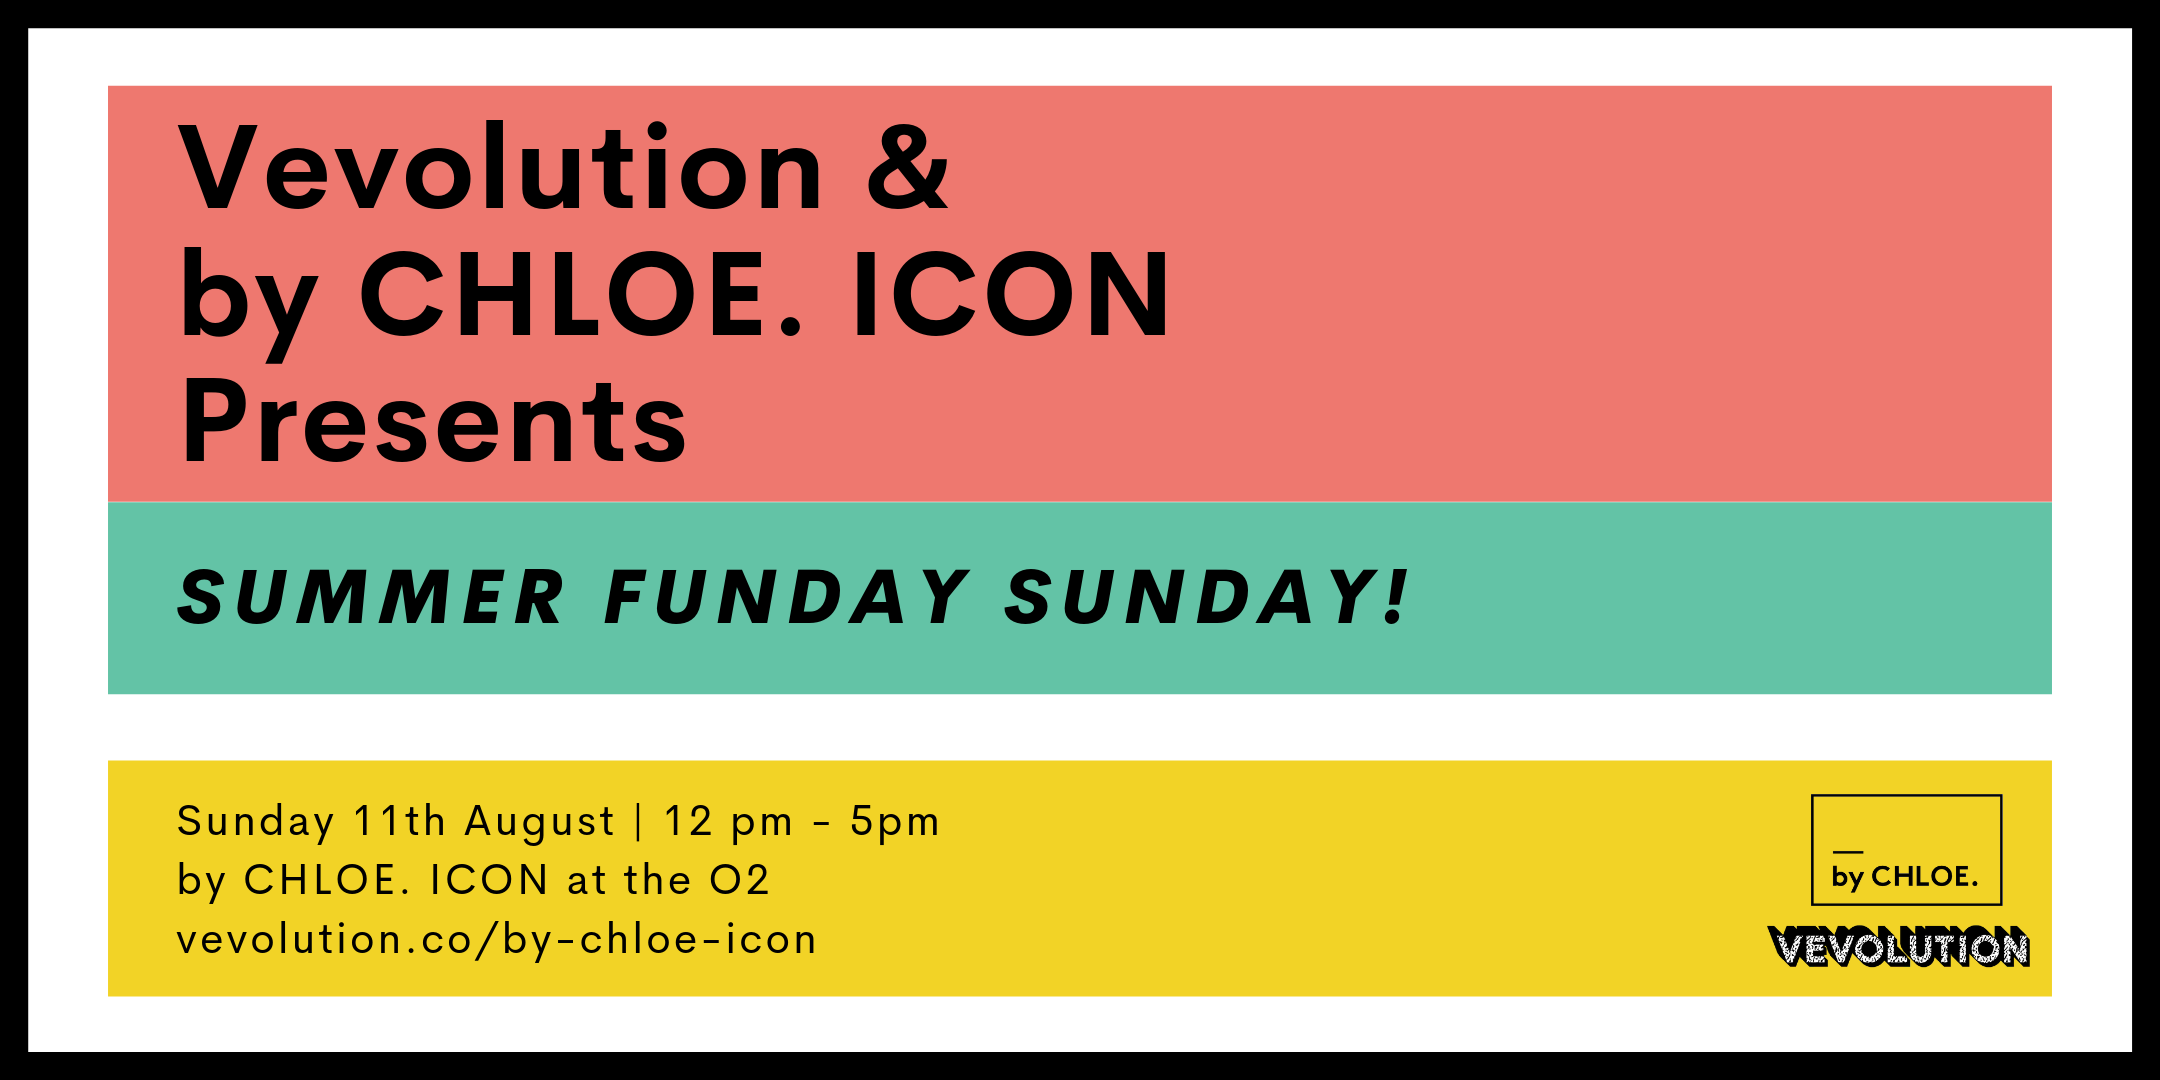 Sunday 11th August _ 12 pm - 5pm by CHLOE. ICON at the O2 vevolution.co_by-chloe-icon.png